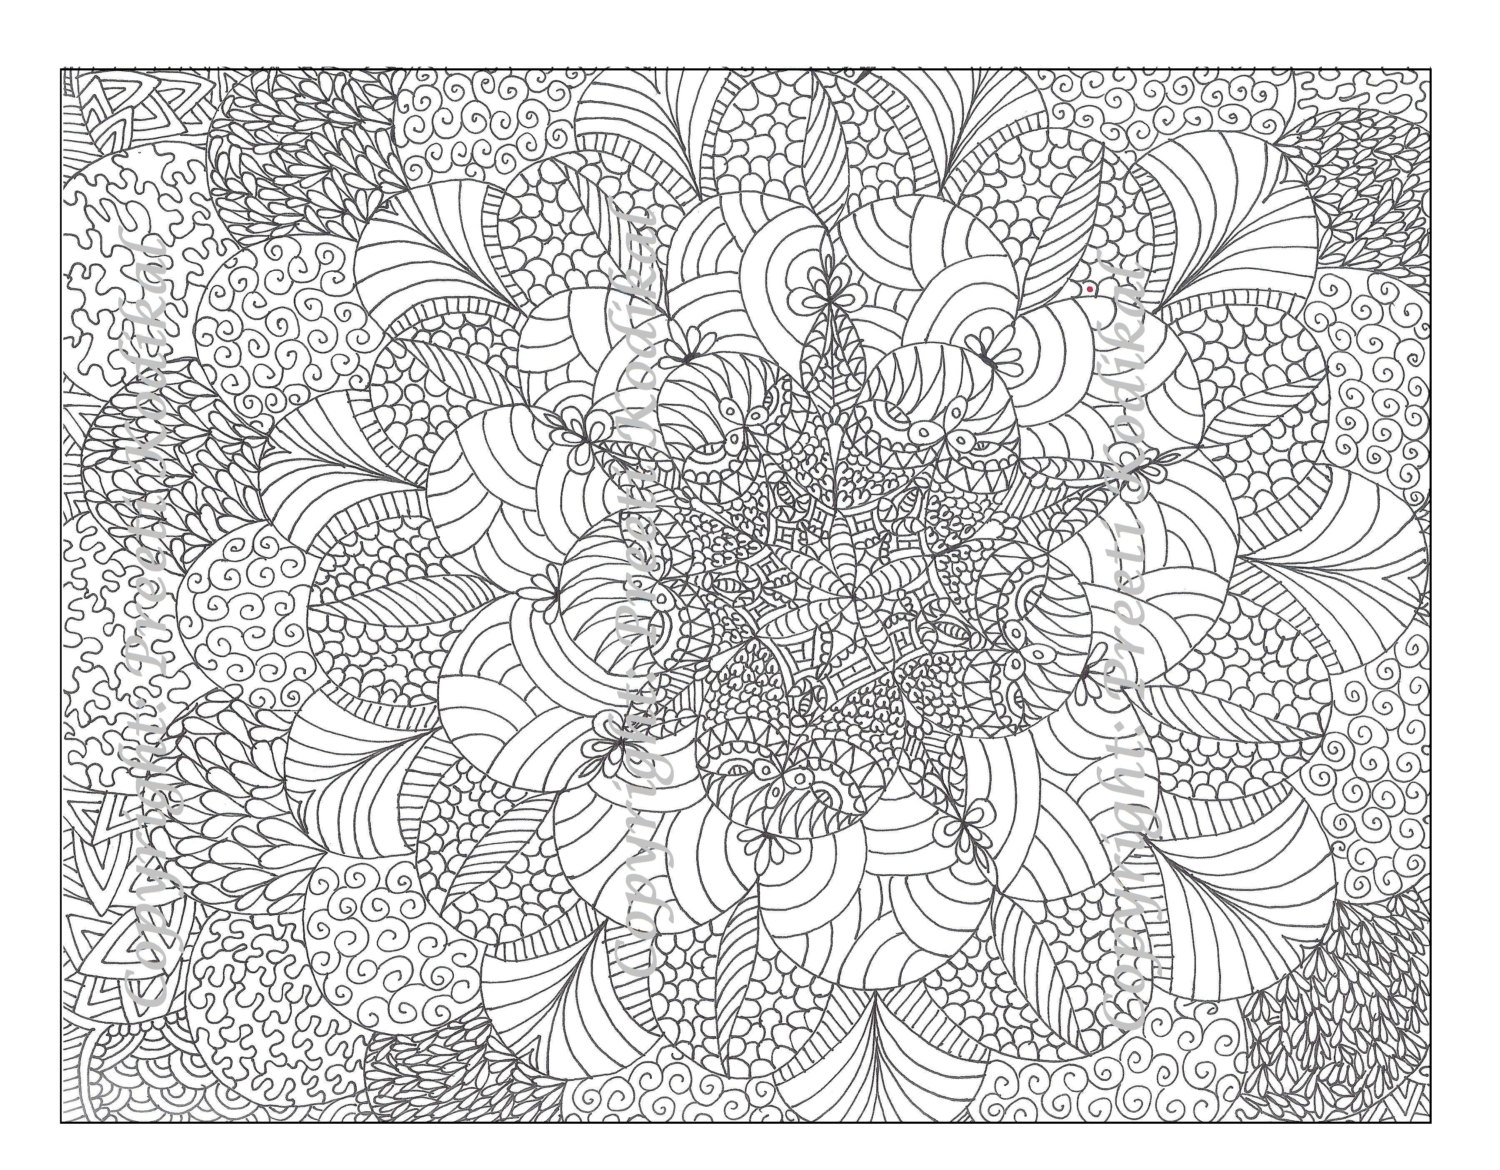 detailed coloring pages printable - Coloring Pages With Designs